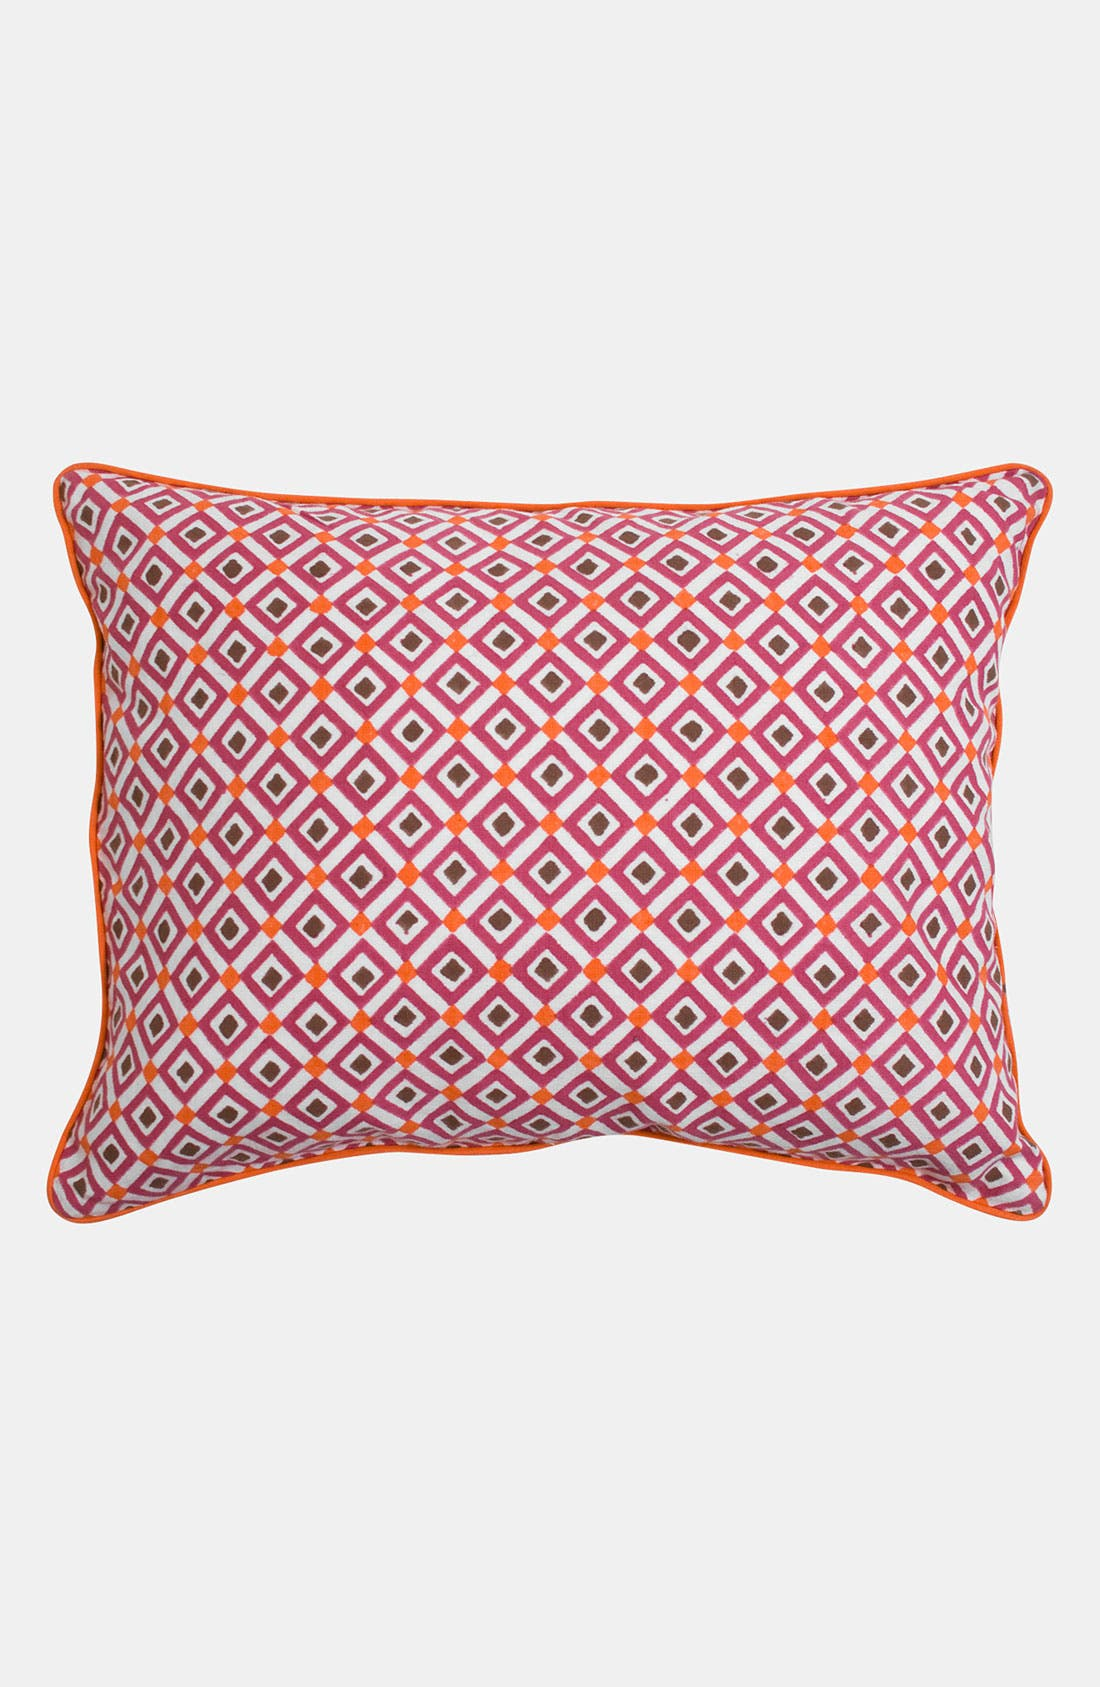 Alternate Image 1 Selected - Jonathan Adler 'Bobo Diamond' Pillow